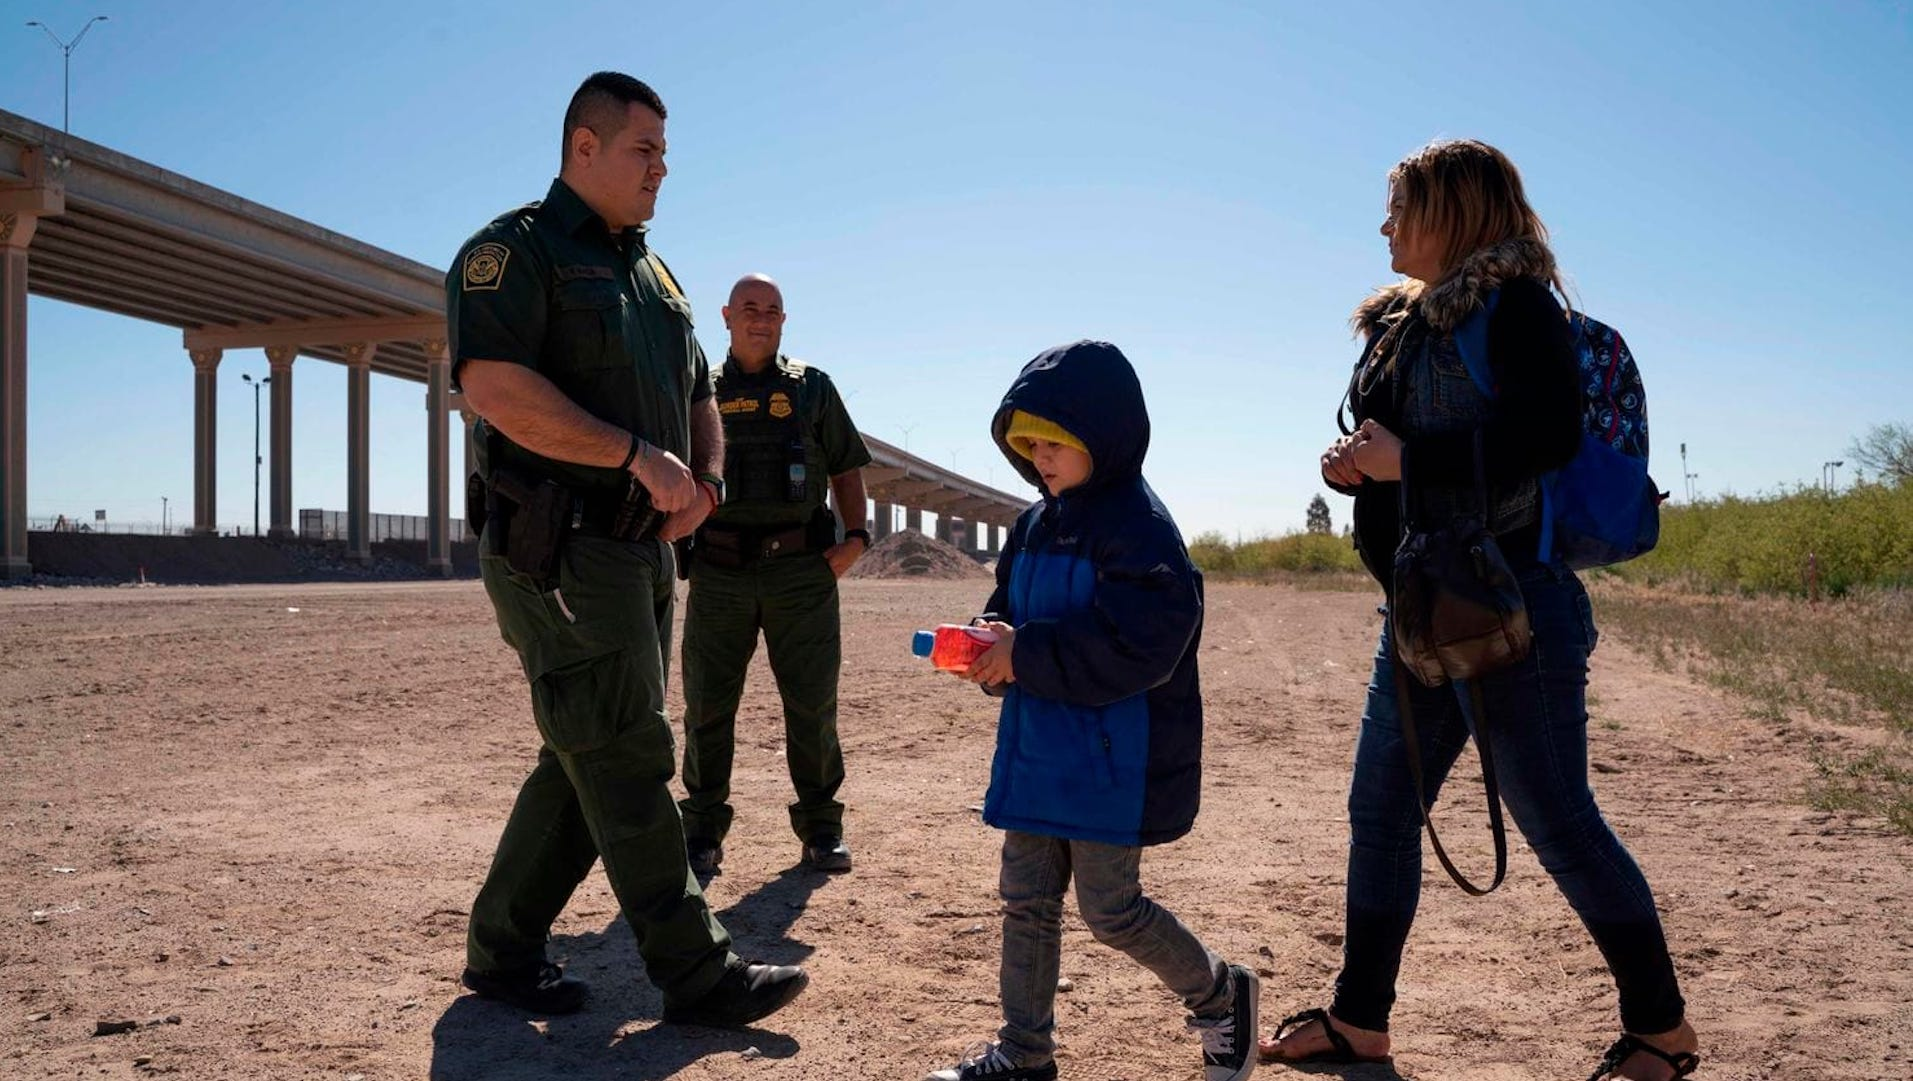 Democrats struggle to address rising border apprehensions as they seek to counter Trump on immigration